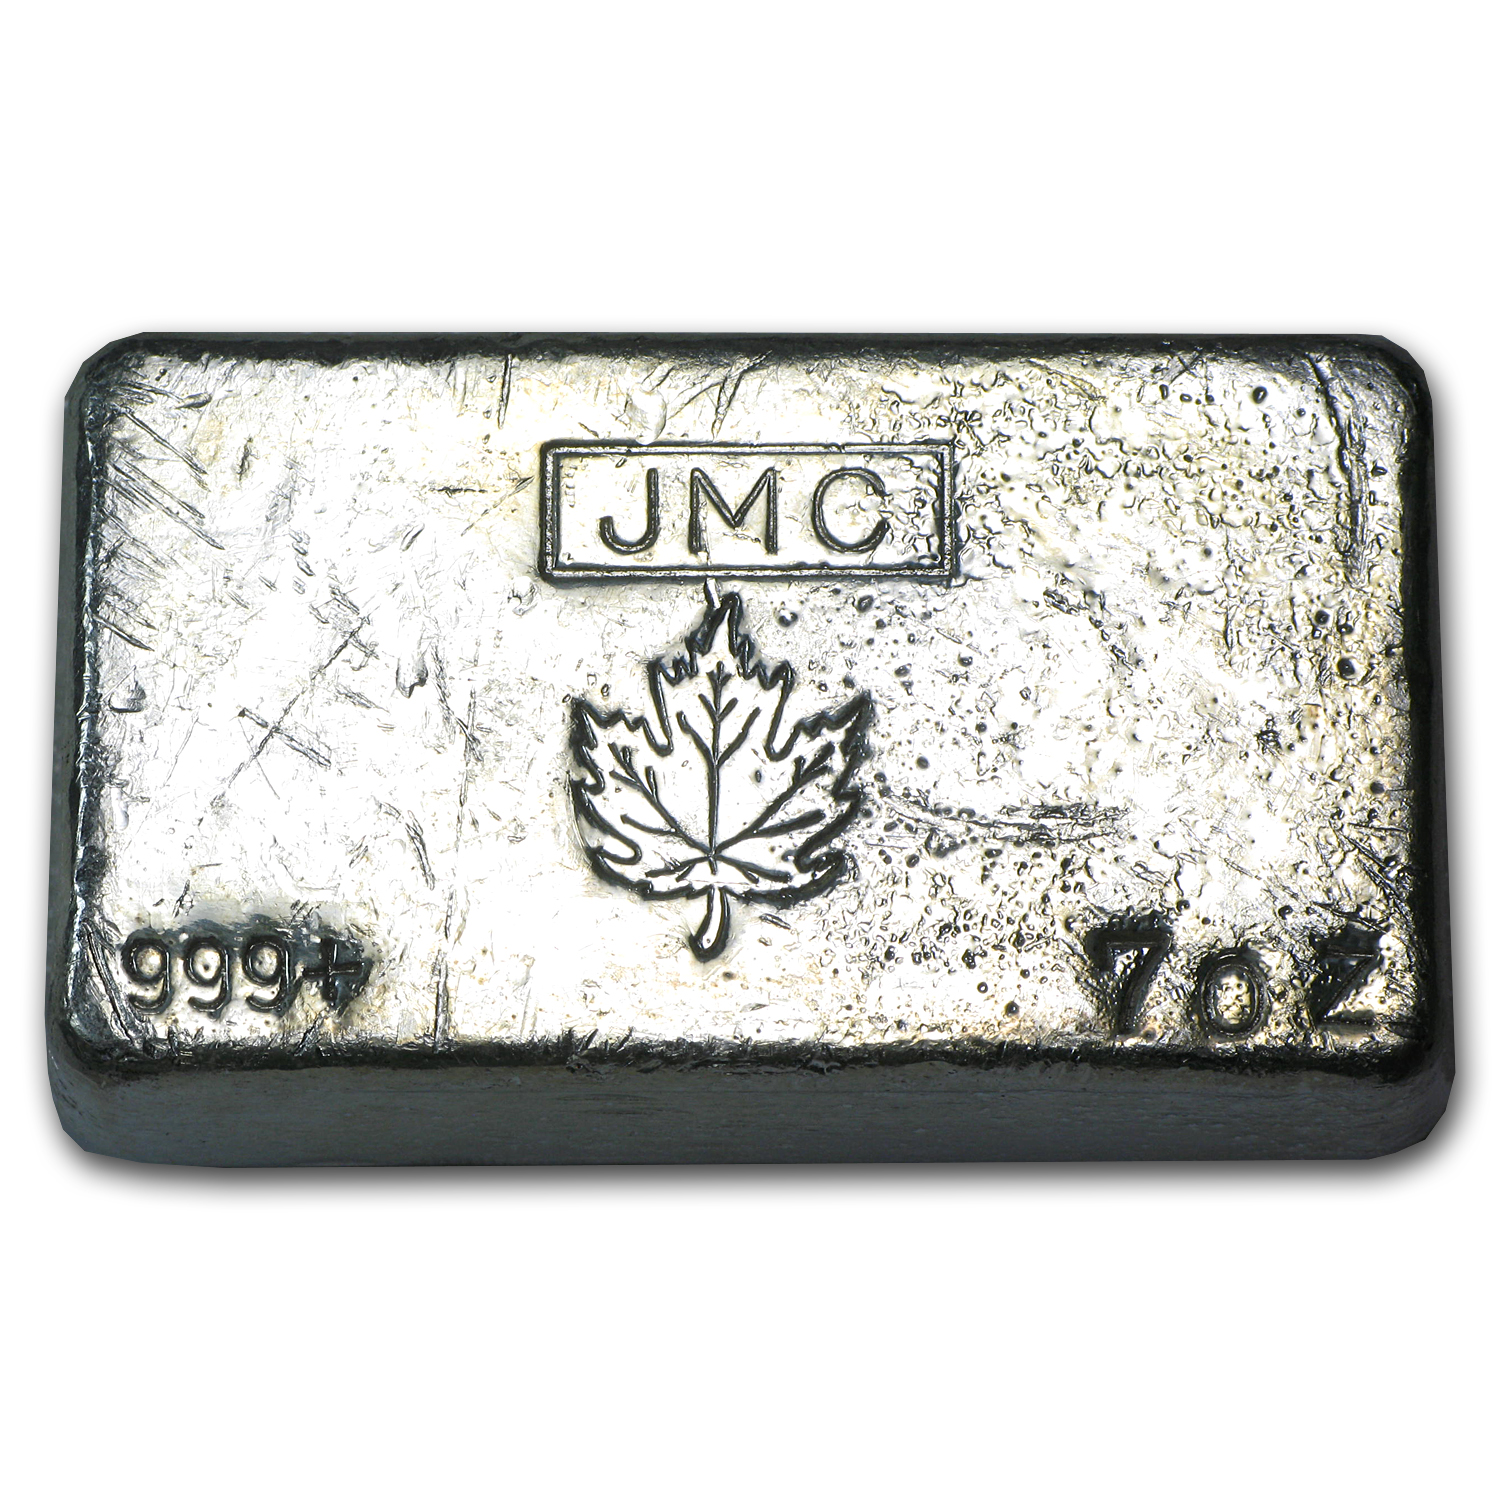 7 oz Silver Bars - Johnson Matthey (Poured/Canada)